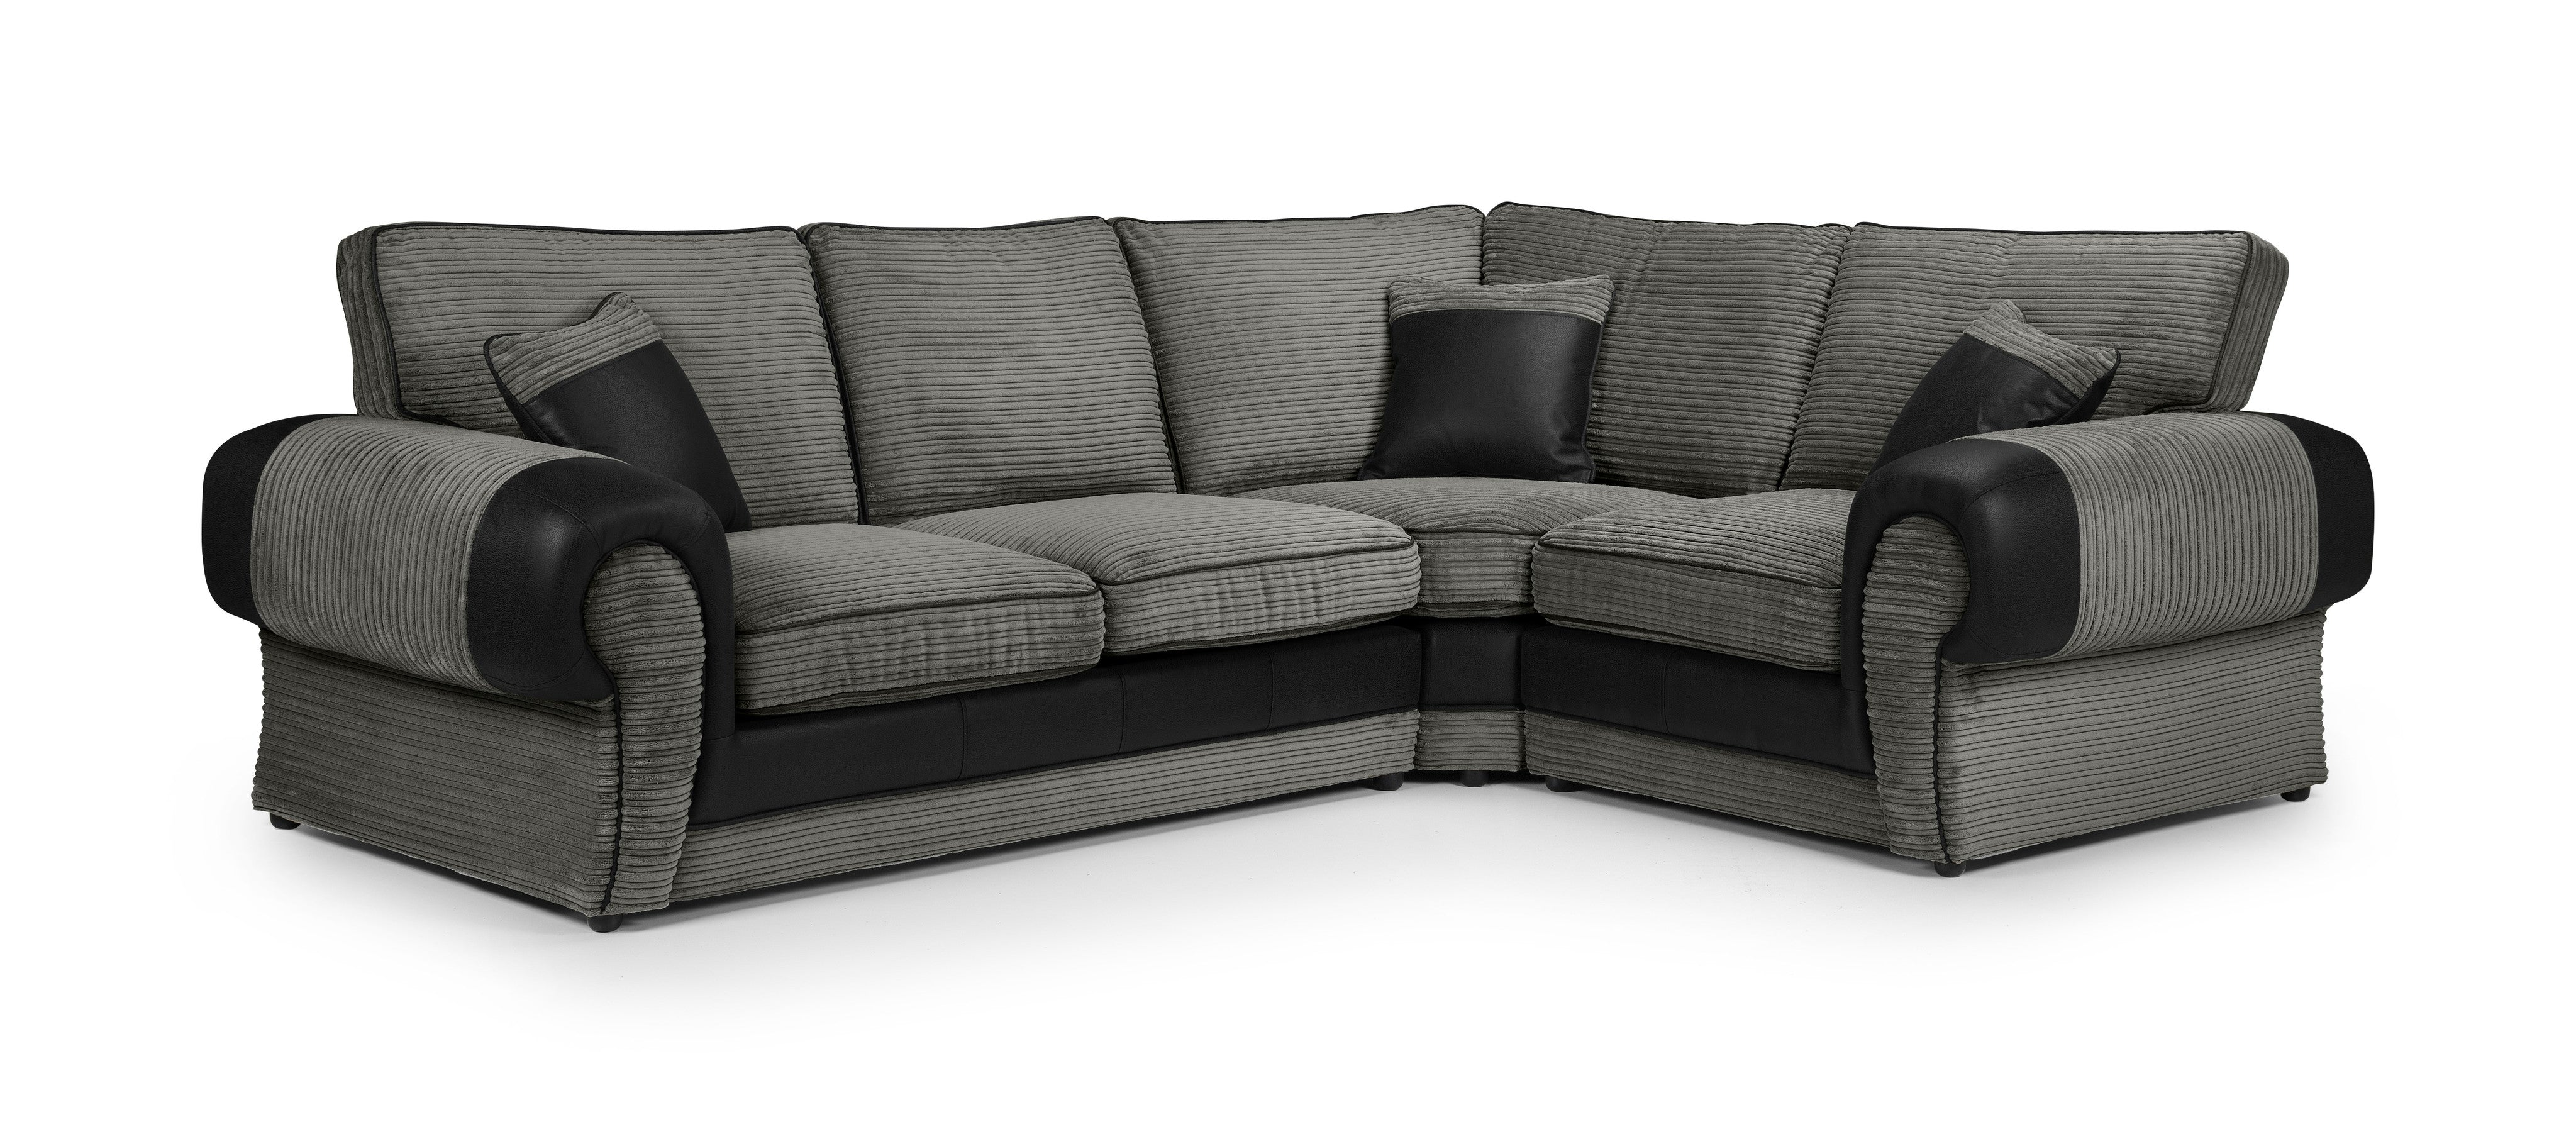 Clearance furniture from All the best High St brands you name it we have it upholstery sofas settees chairs bed settees leather fabric sofa beds tables dining cabinet.